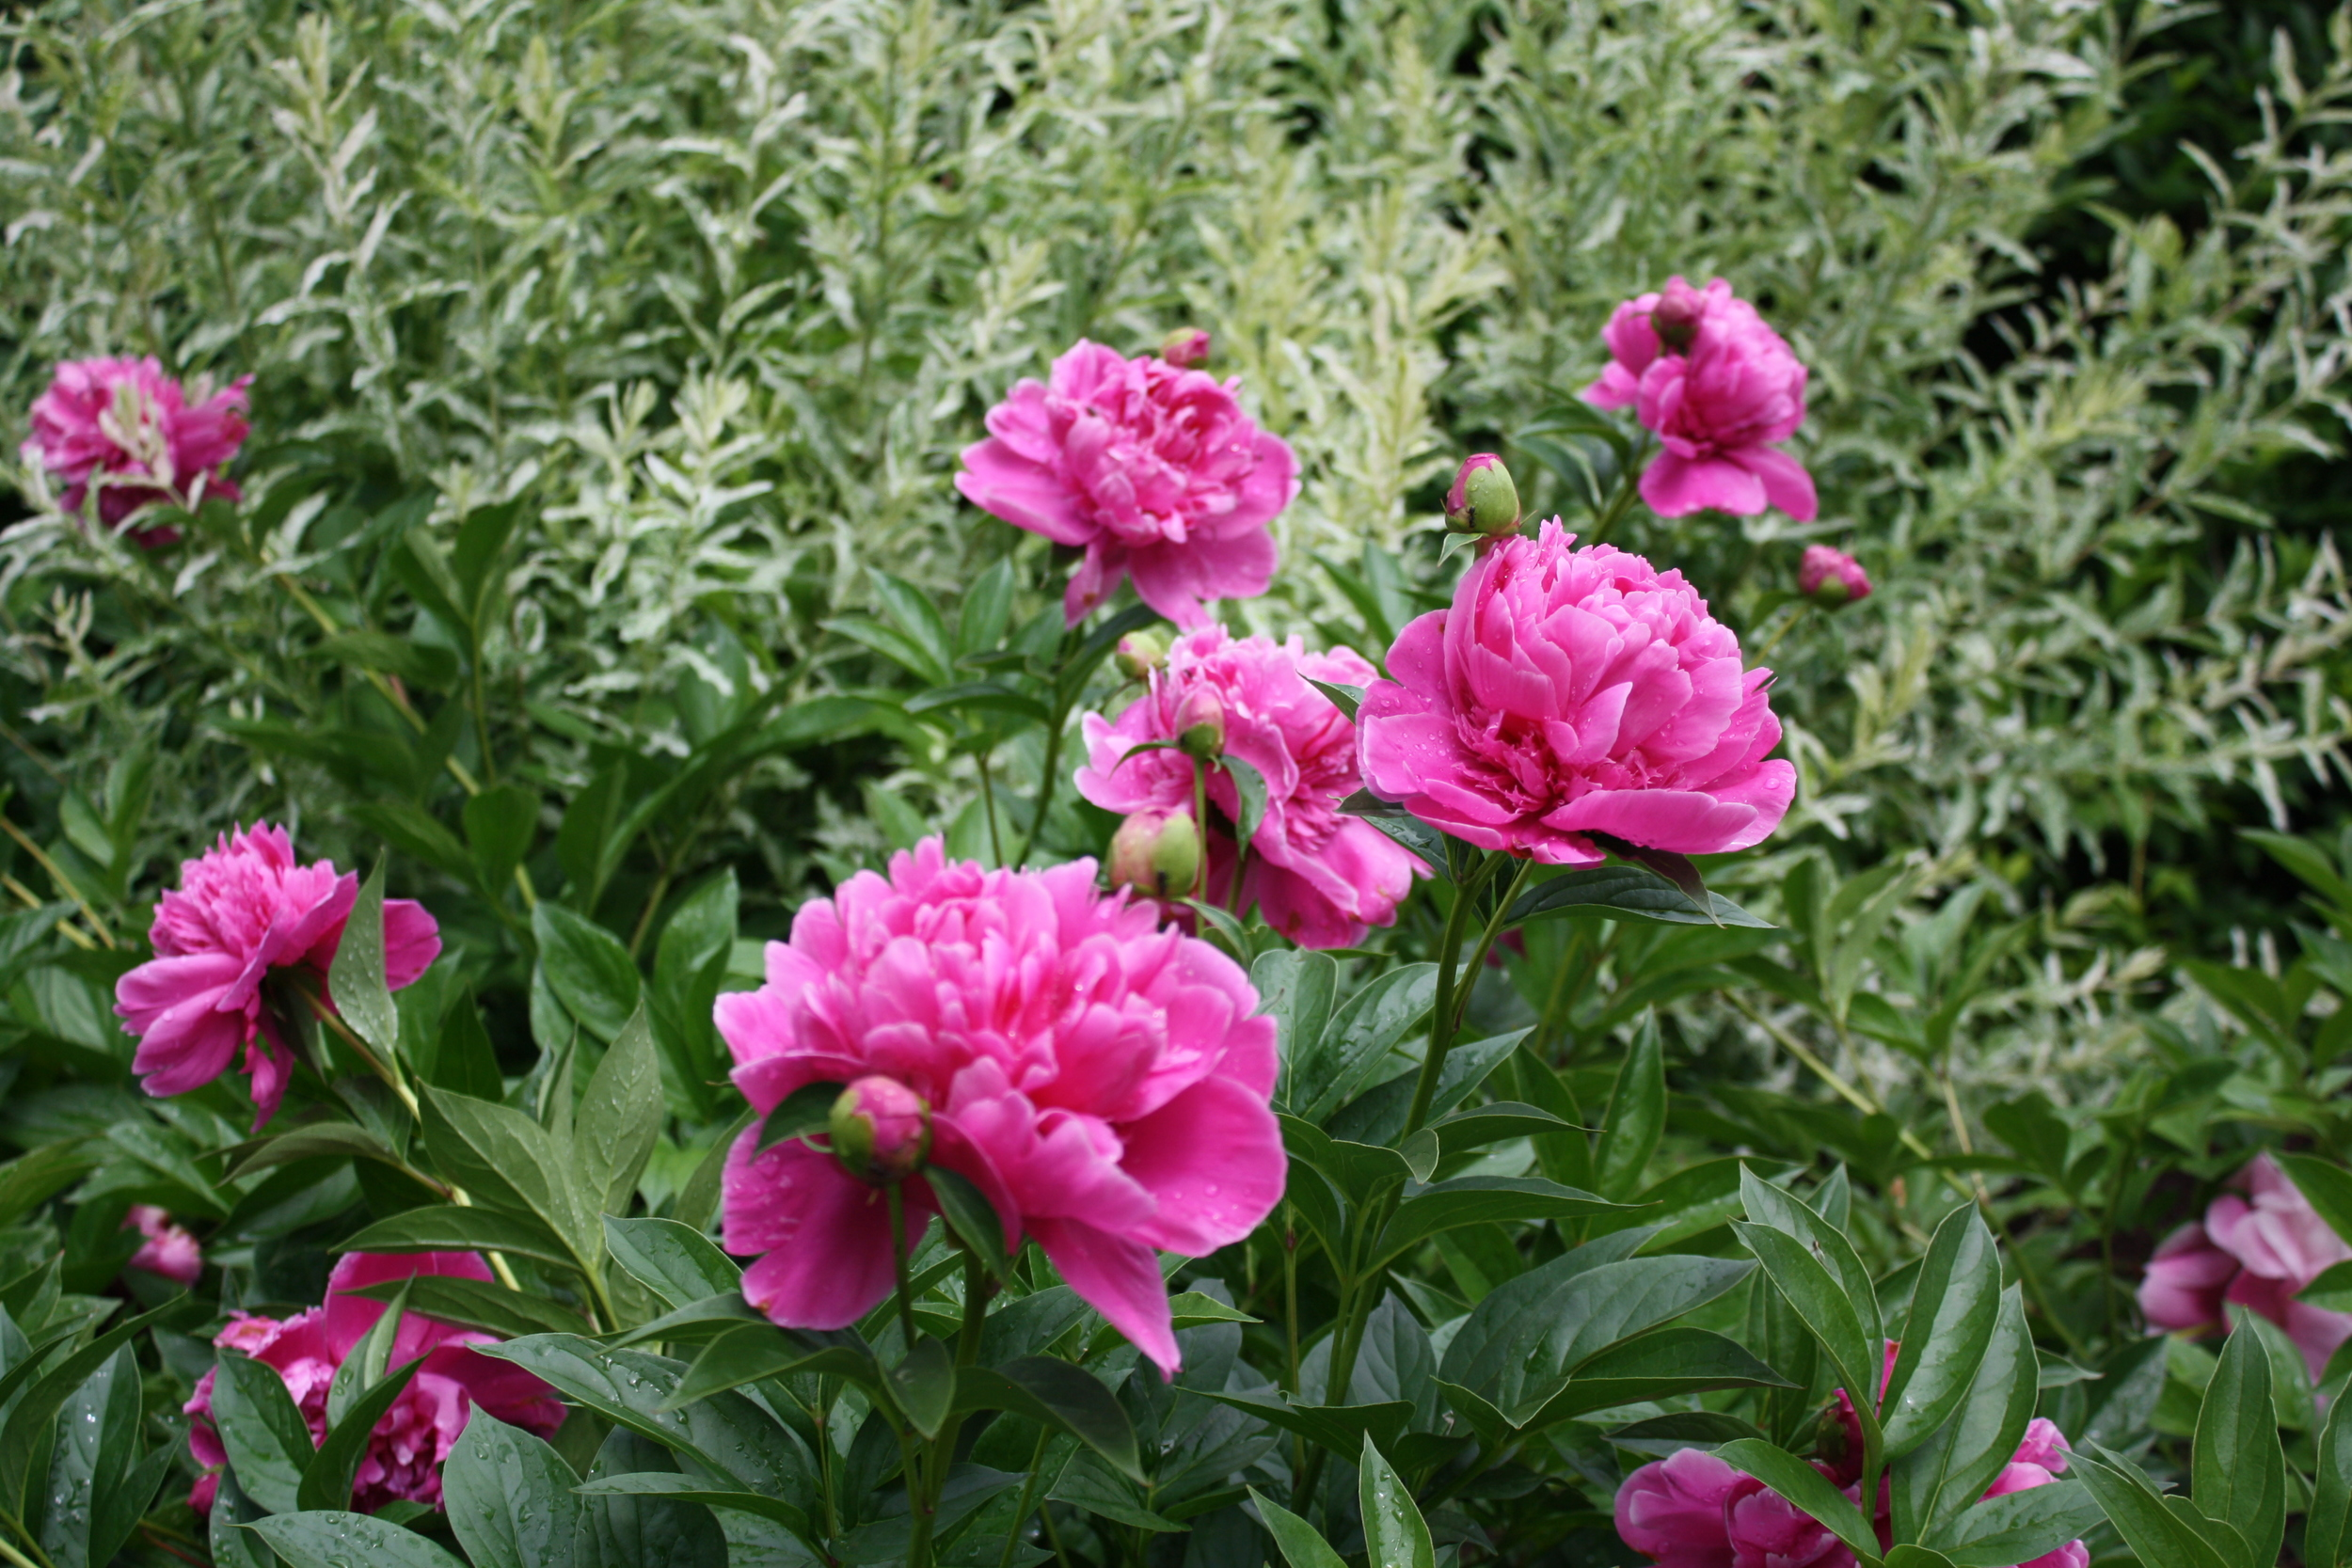 Peonies I divided from the old stand of them we inherited with the house, set off by 'Hakuro Nishiki' Willow behind